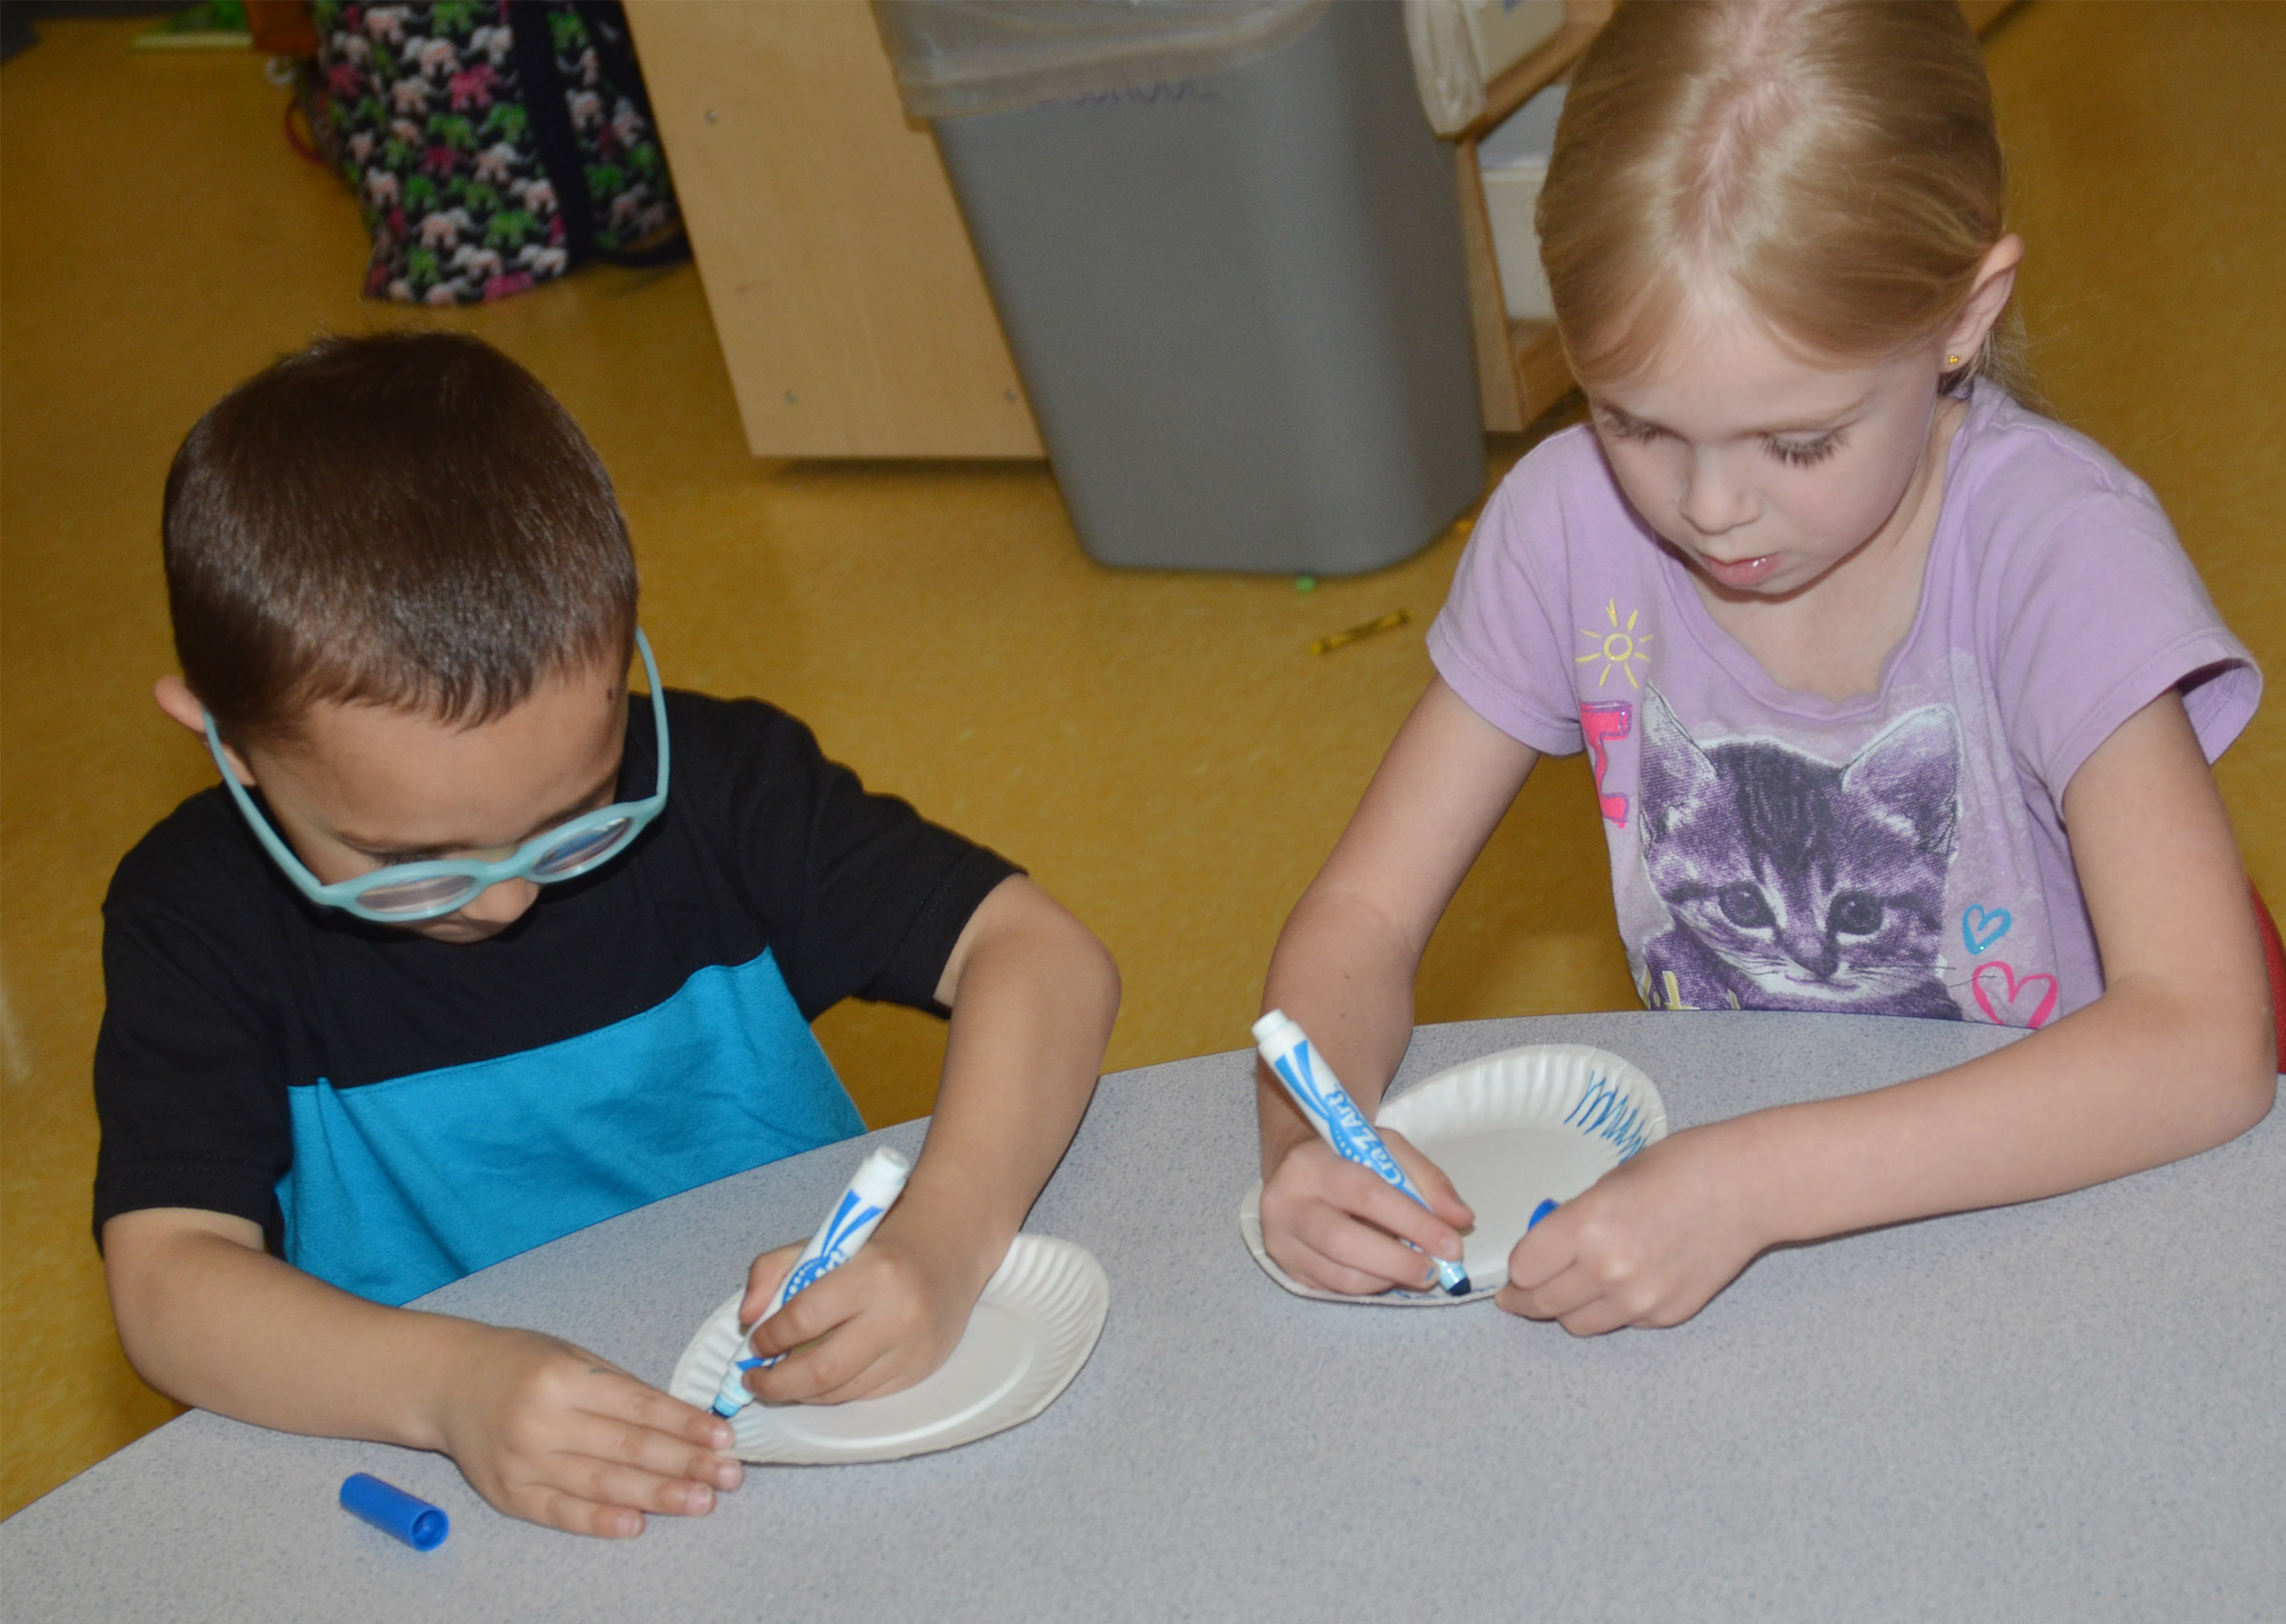 CES preschool students Chanler Mann, at left, and Alinna Bray color their paper plates, which will soon become lily pads.